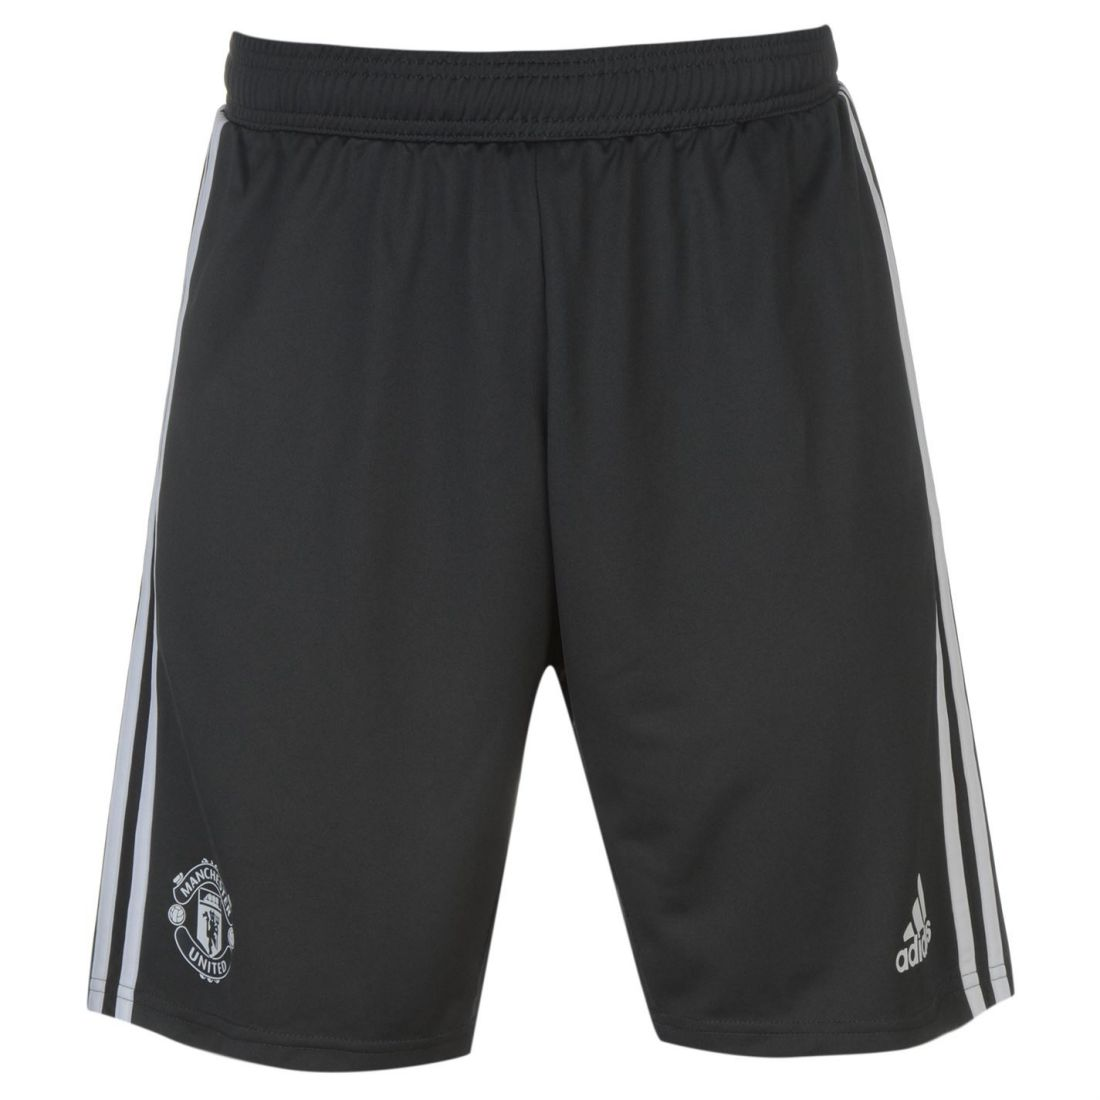 adidas Mens Manchester United Training Shorts Football Pants Trousers  Bottoms 87aa65f17d8d